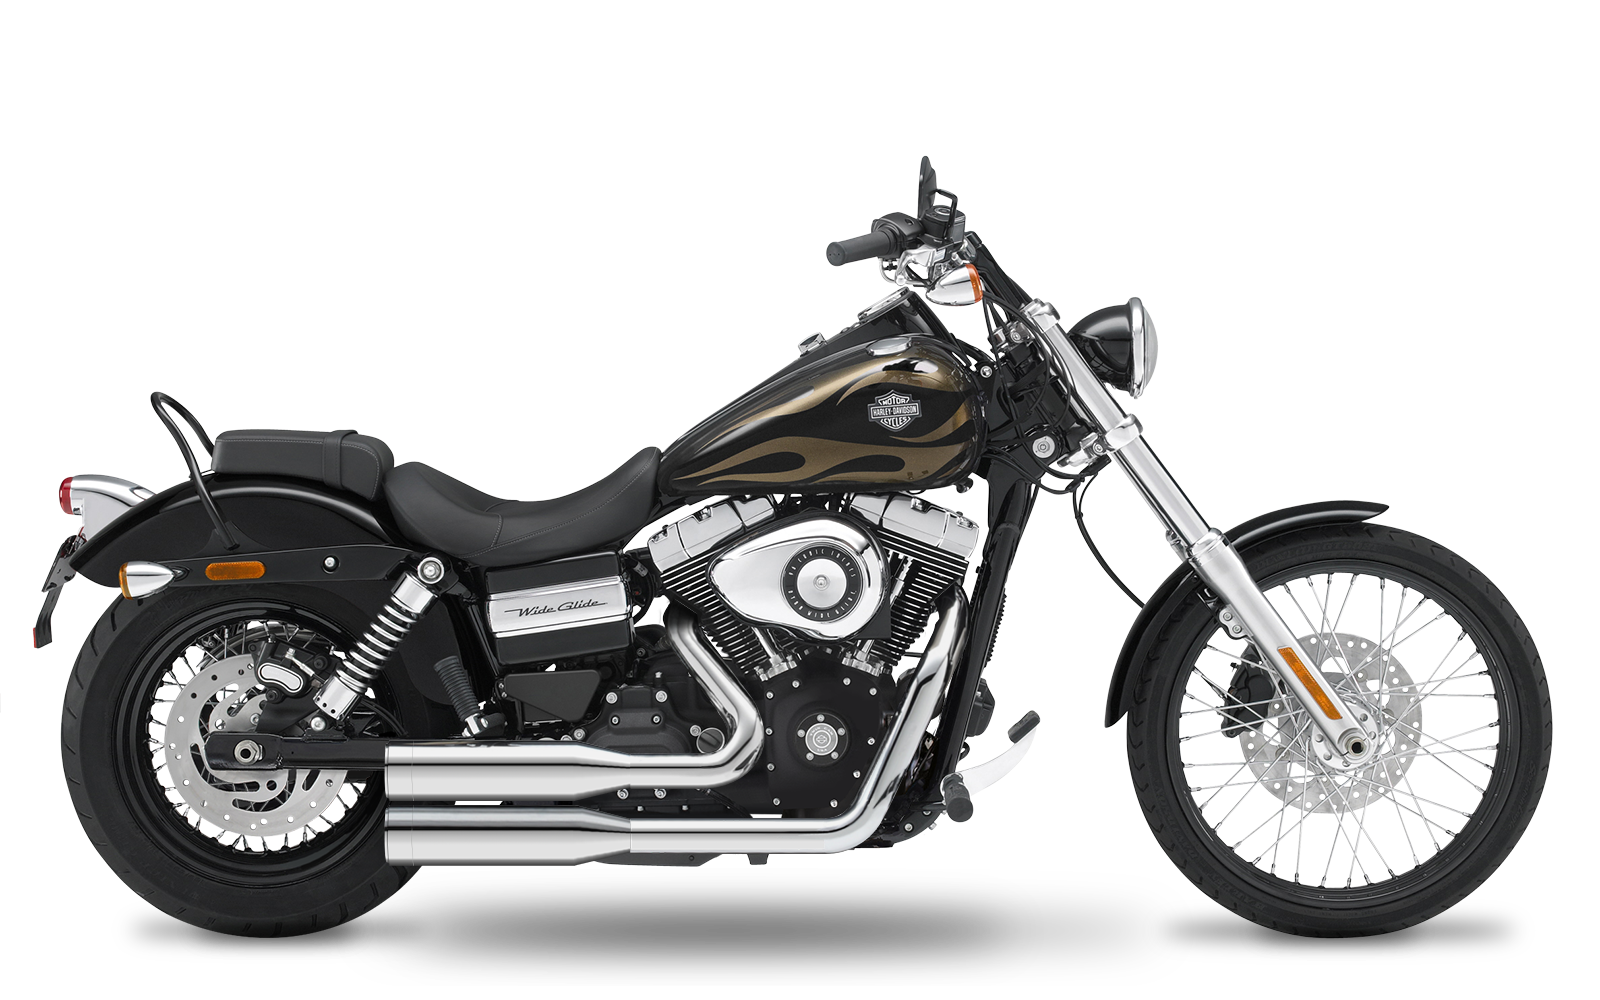 Dyna - Wide Glide - TC96 - 2010-2012 - Complete systems